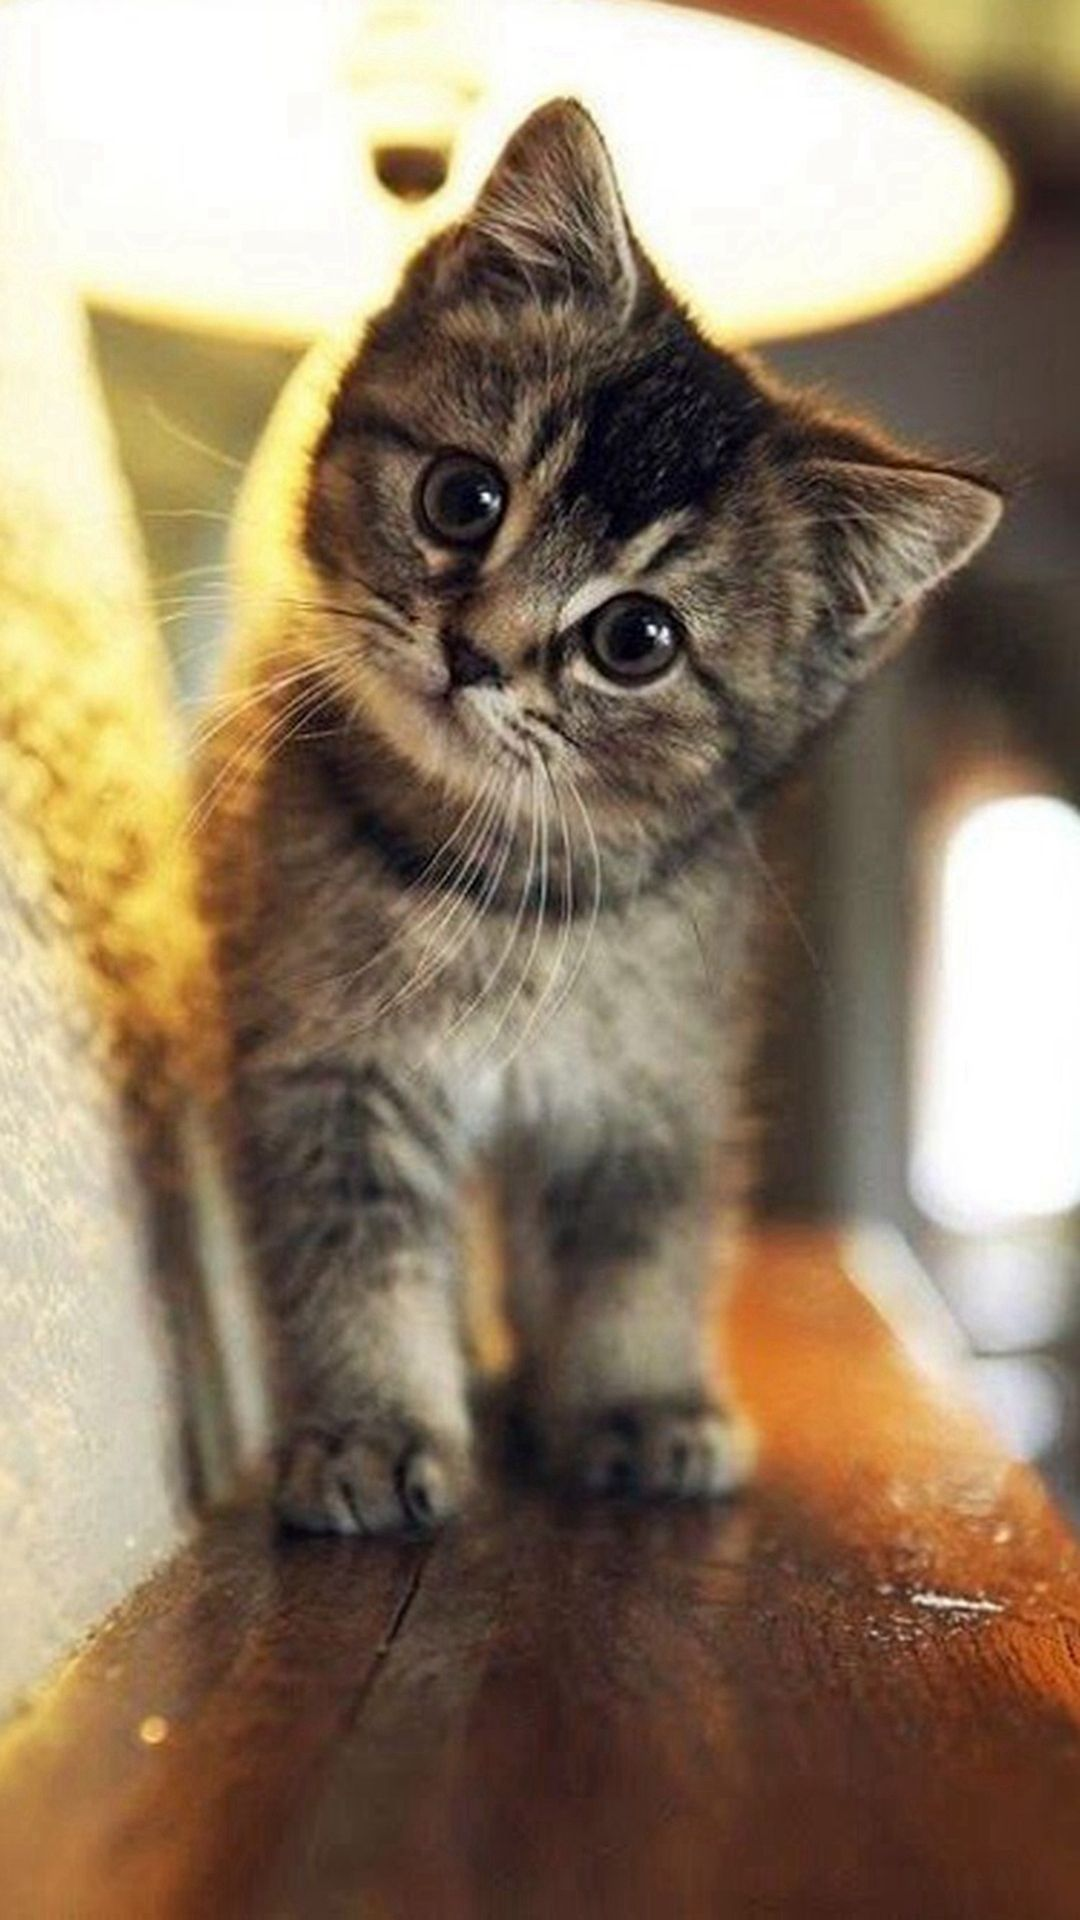 Cute Cat Wallpaper iPhone iPhoneWallpapers Cute cat wallpaper 1080x1920